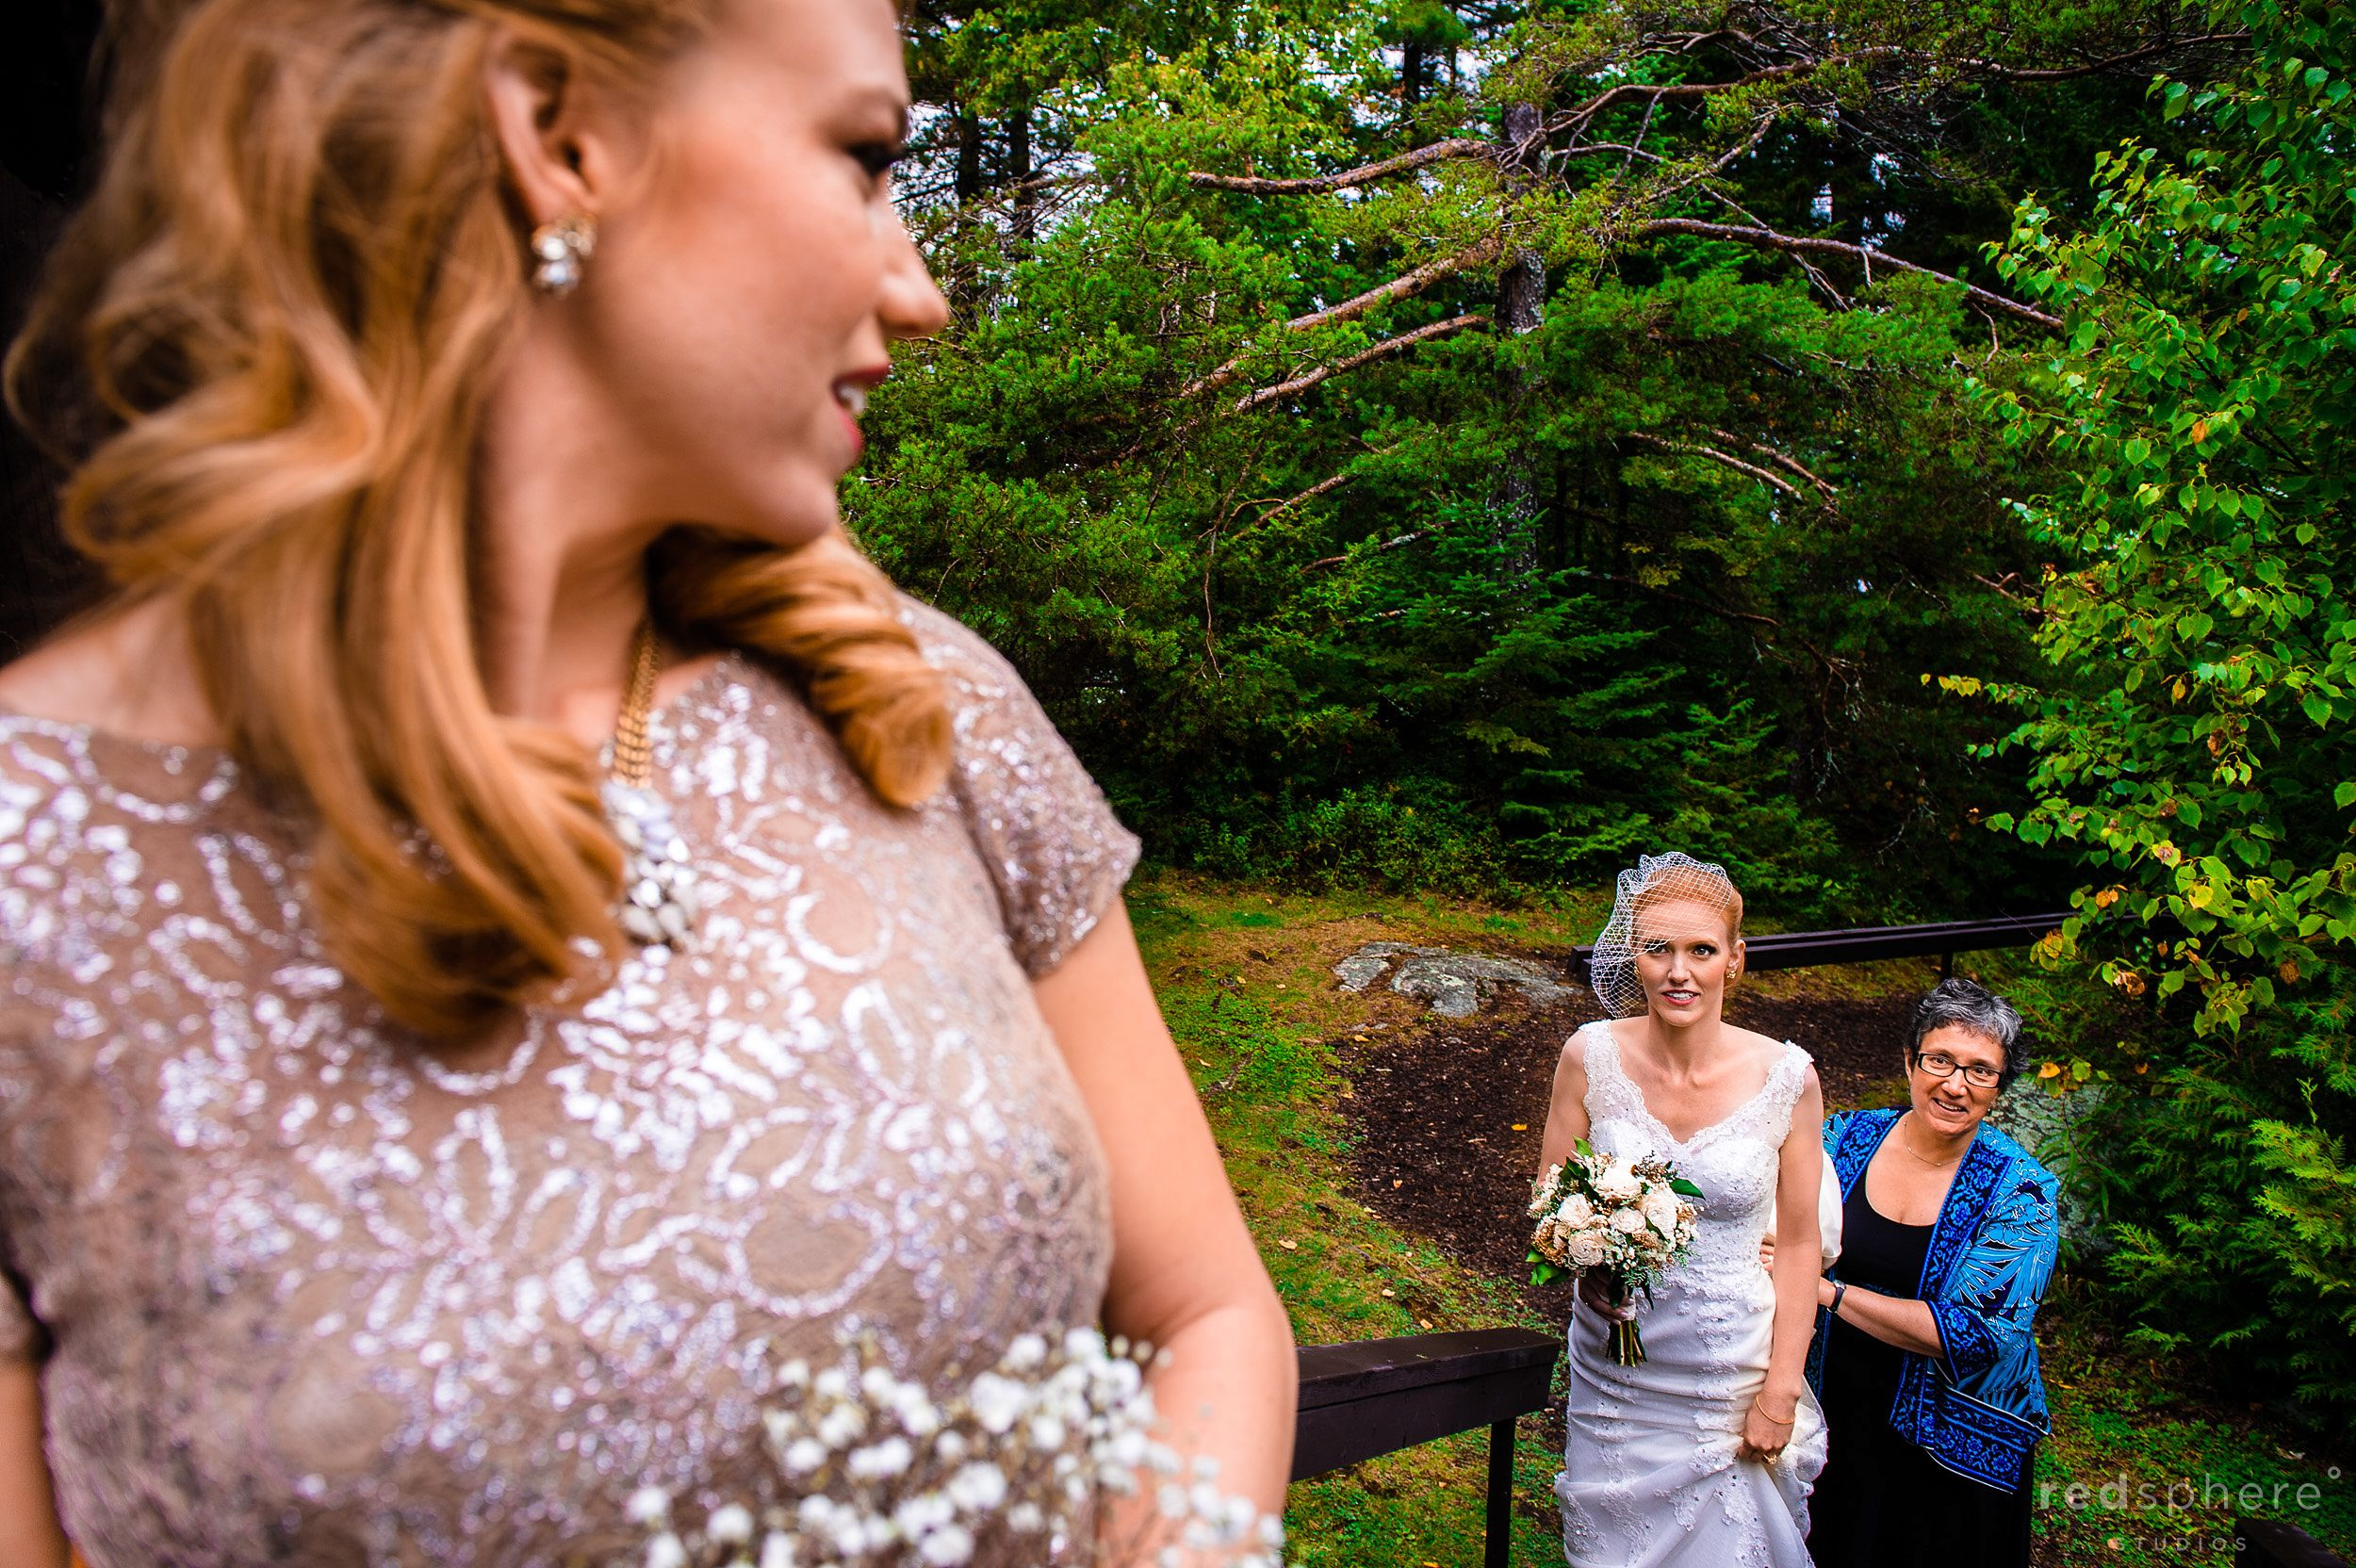 Bride Walking up Steps with Mother's Help